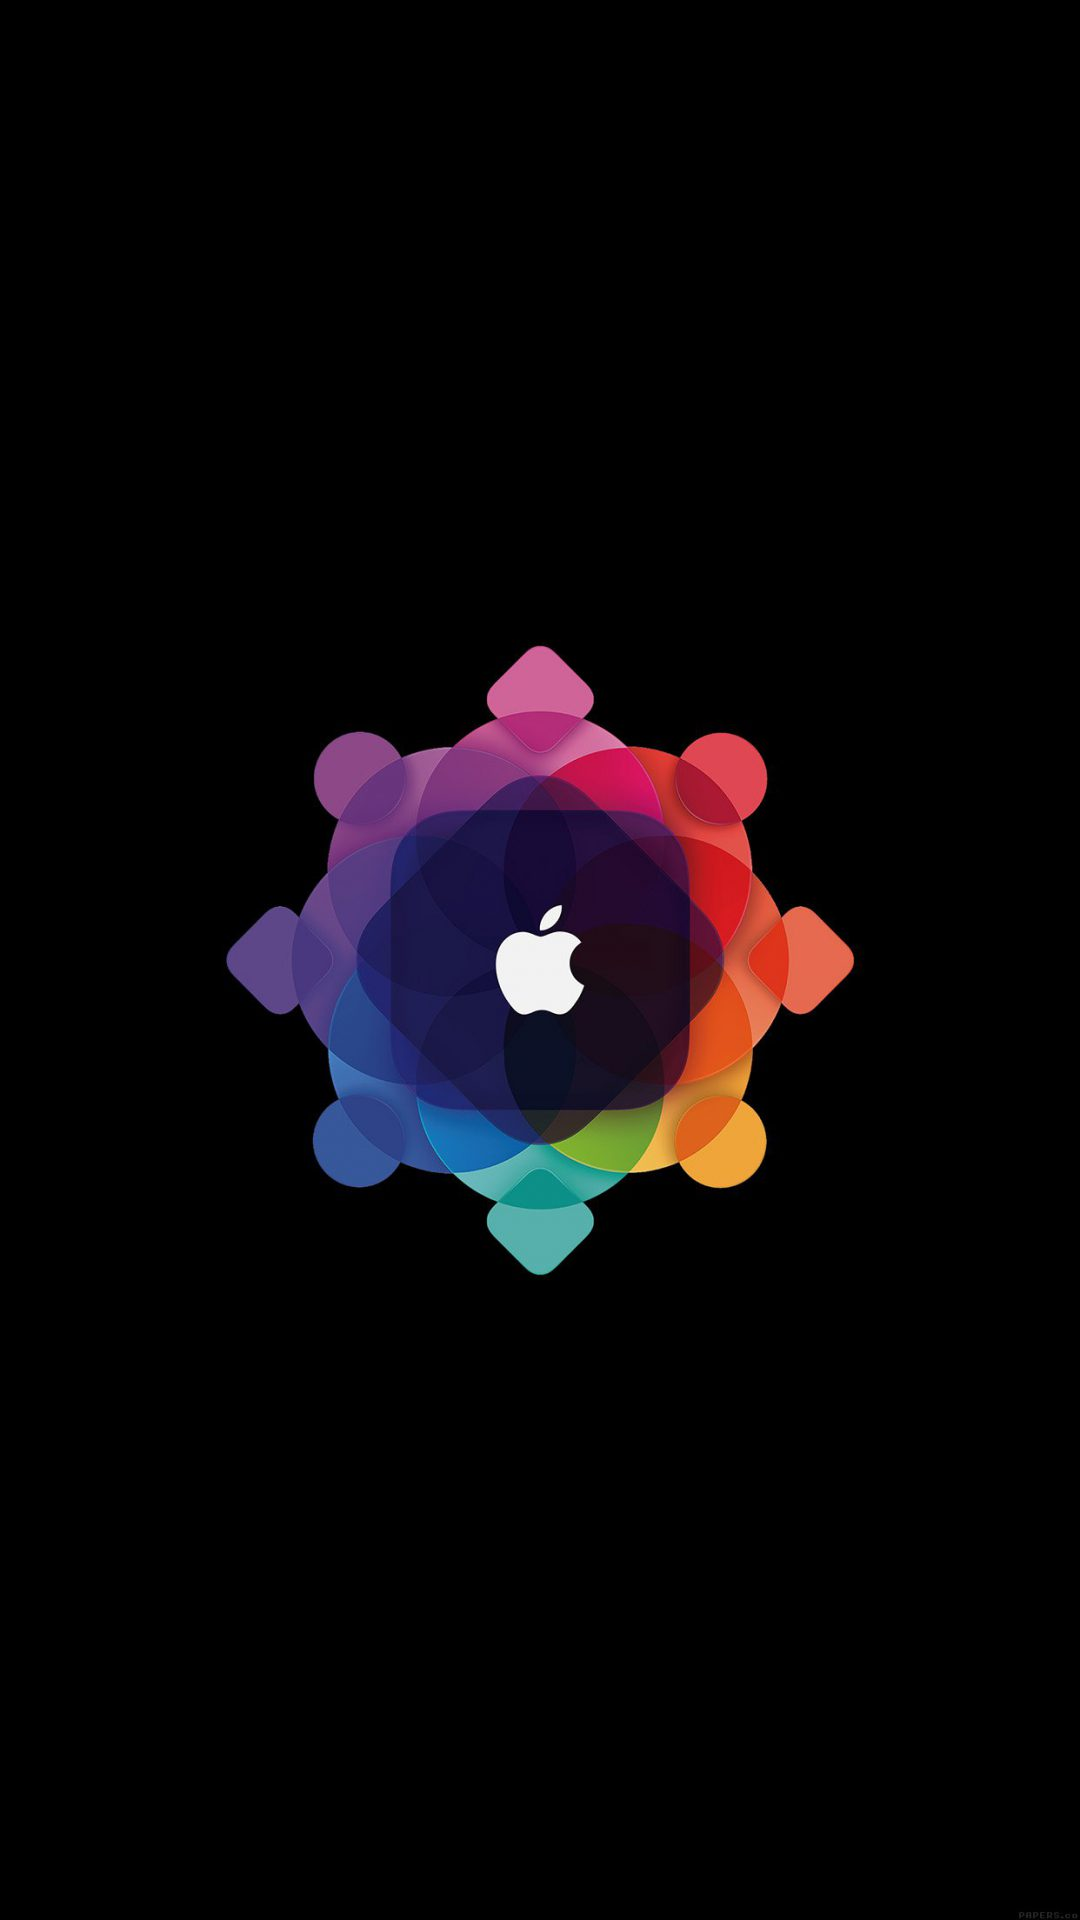 Apple Wwdc Art Logo Minimal Dark